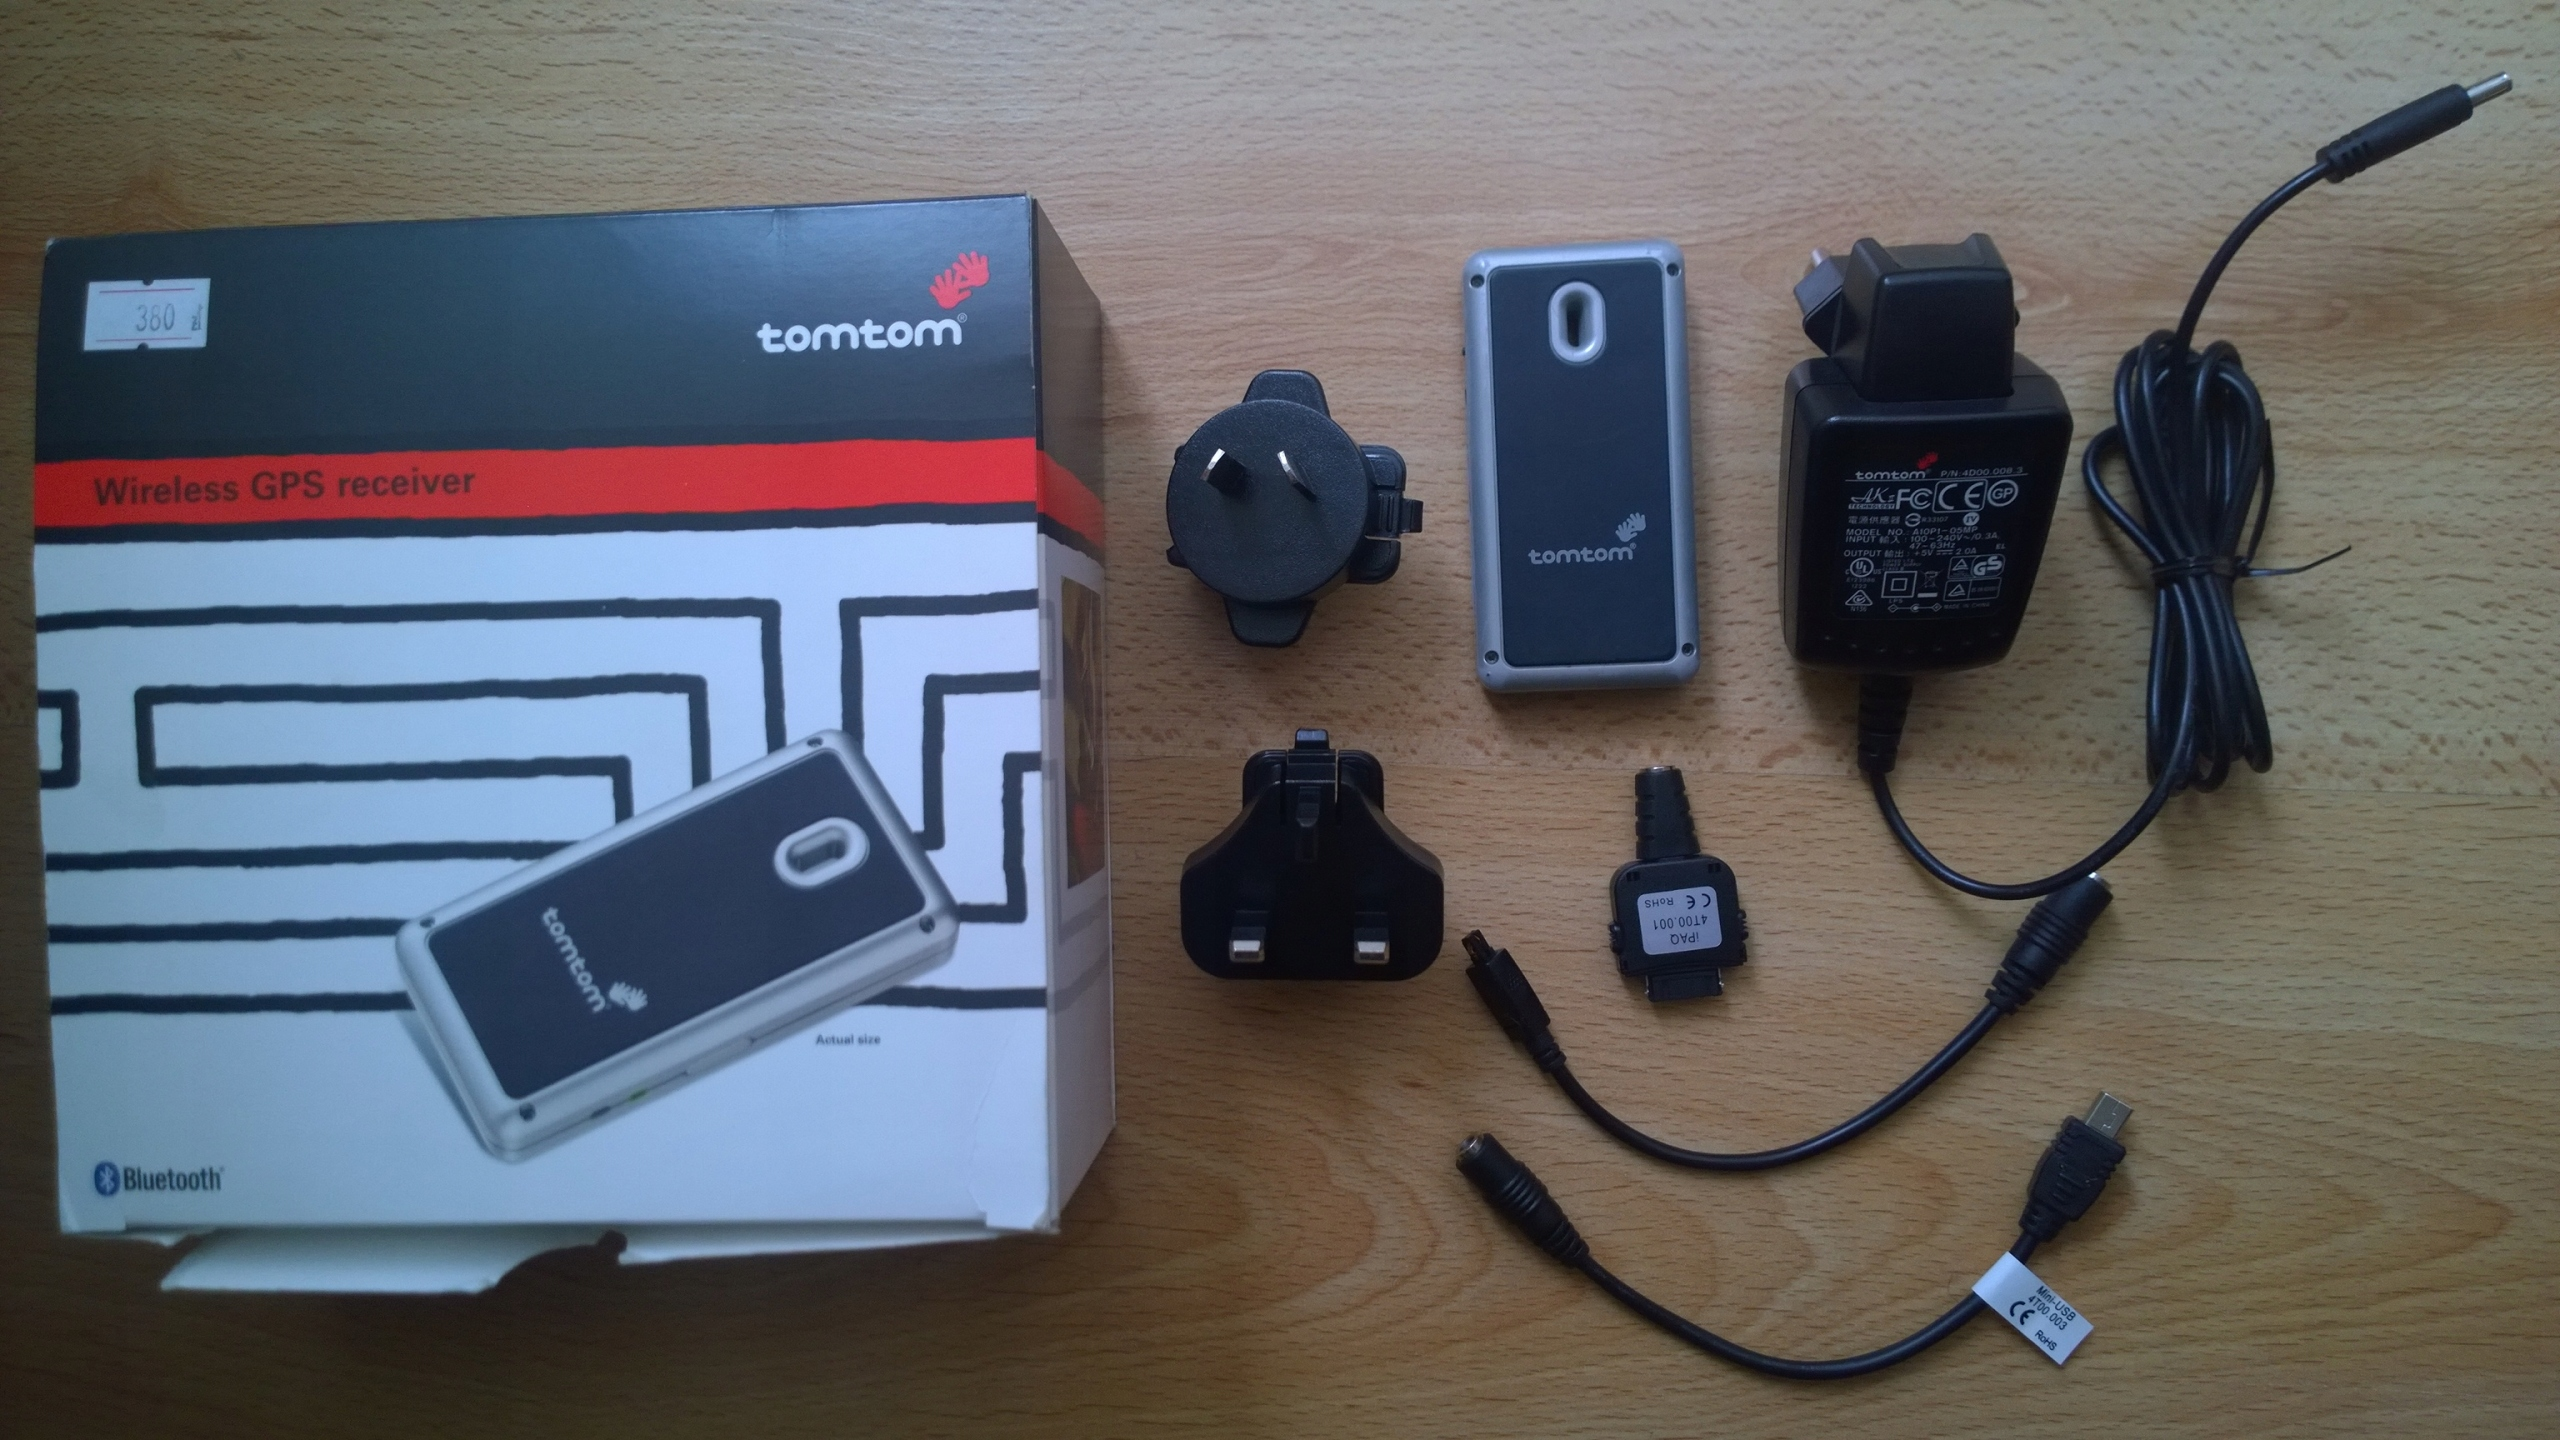 Tomtom odbiornik GPS bluetooth wireless